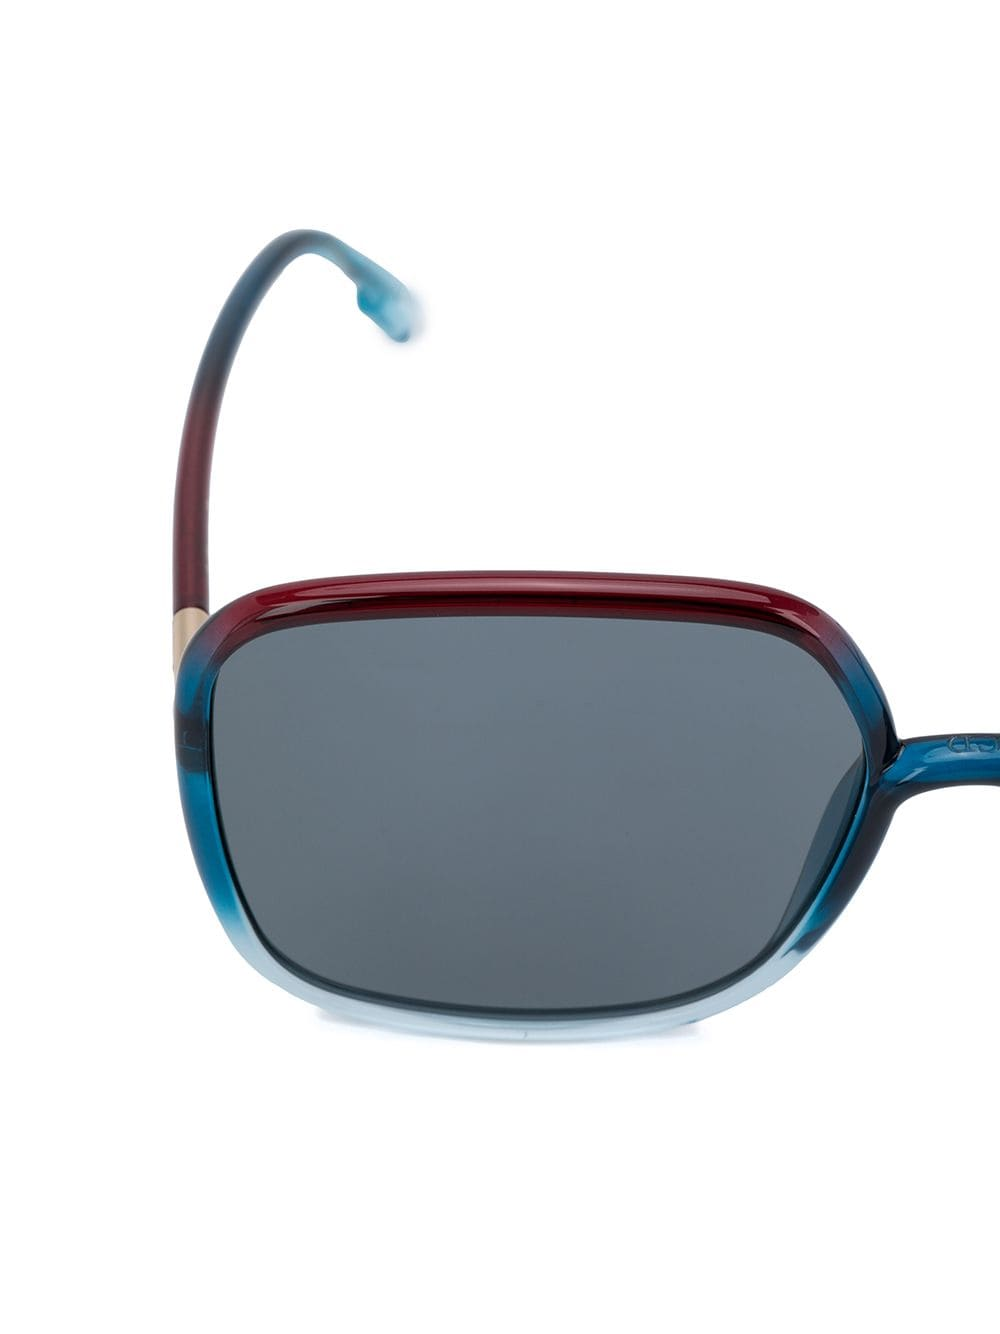 SoStellaire1 / Burgundy Blue